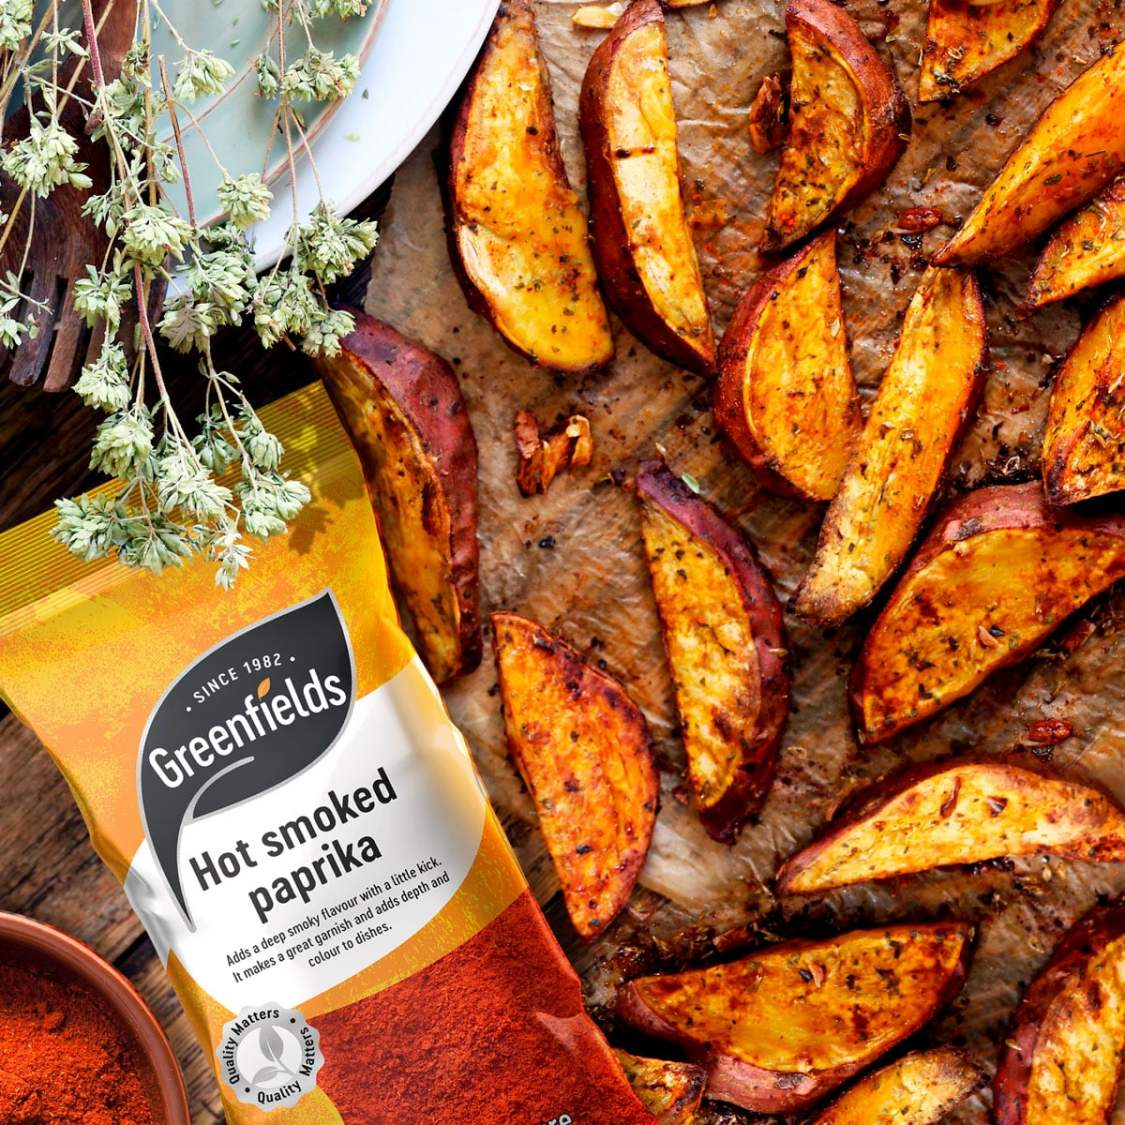 SPICES-HOT-SMOKED-PAPRIKA-2